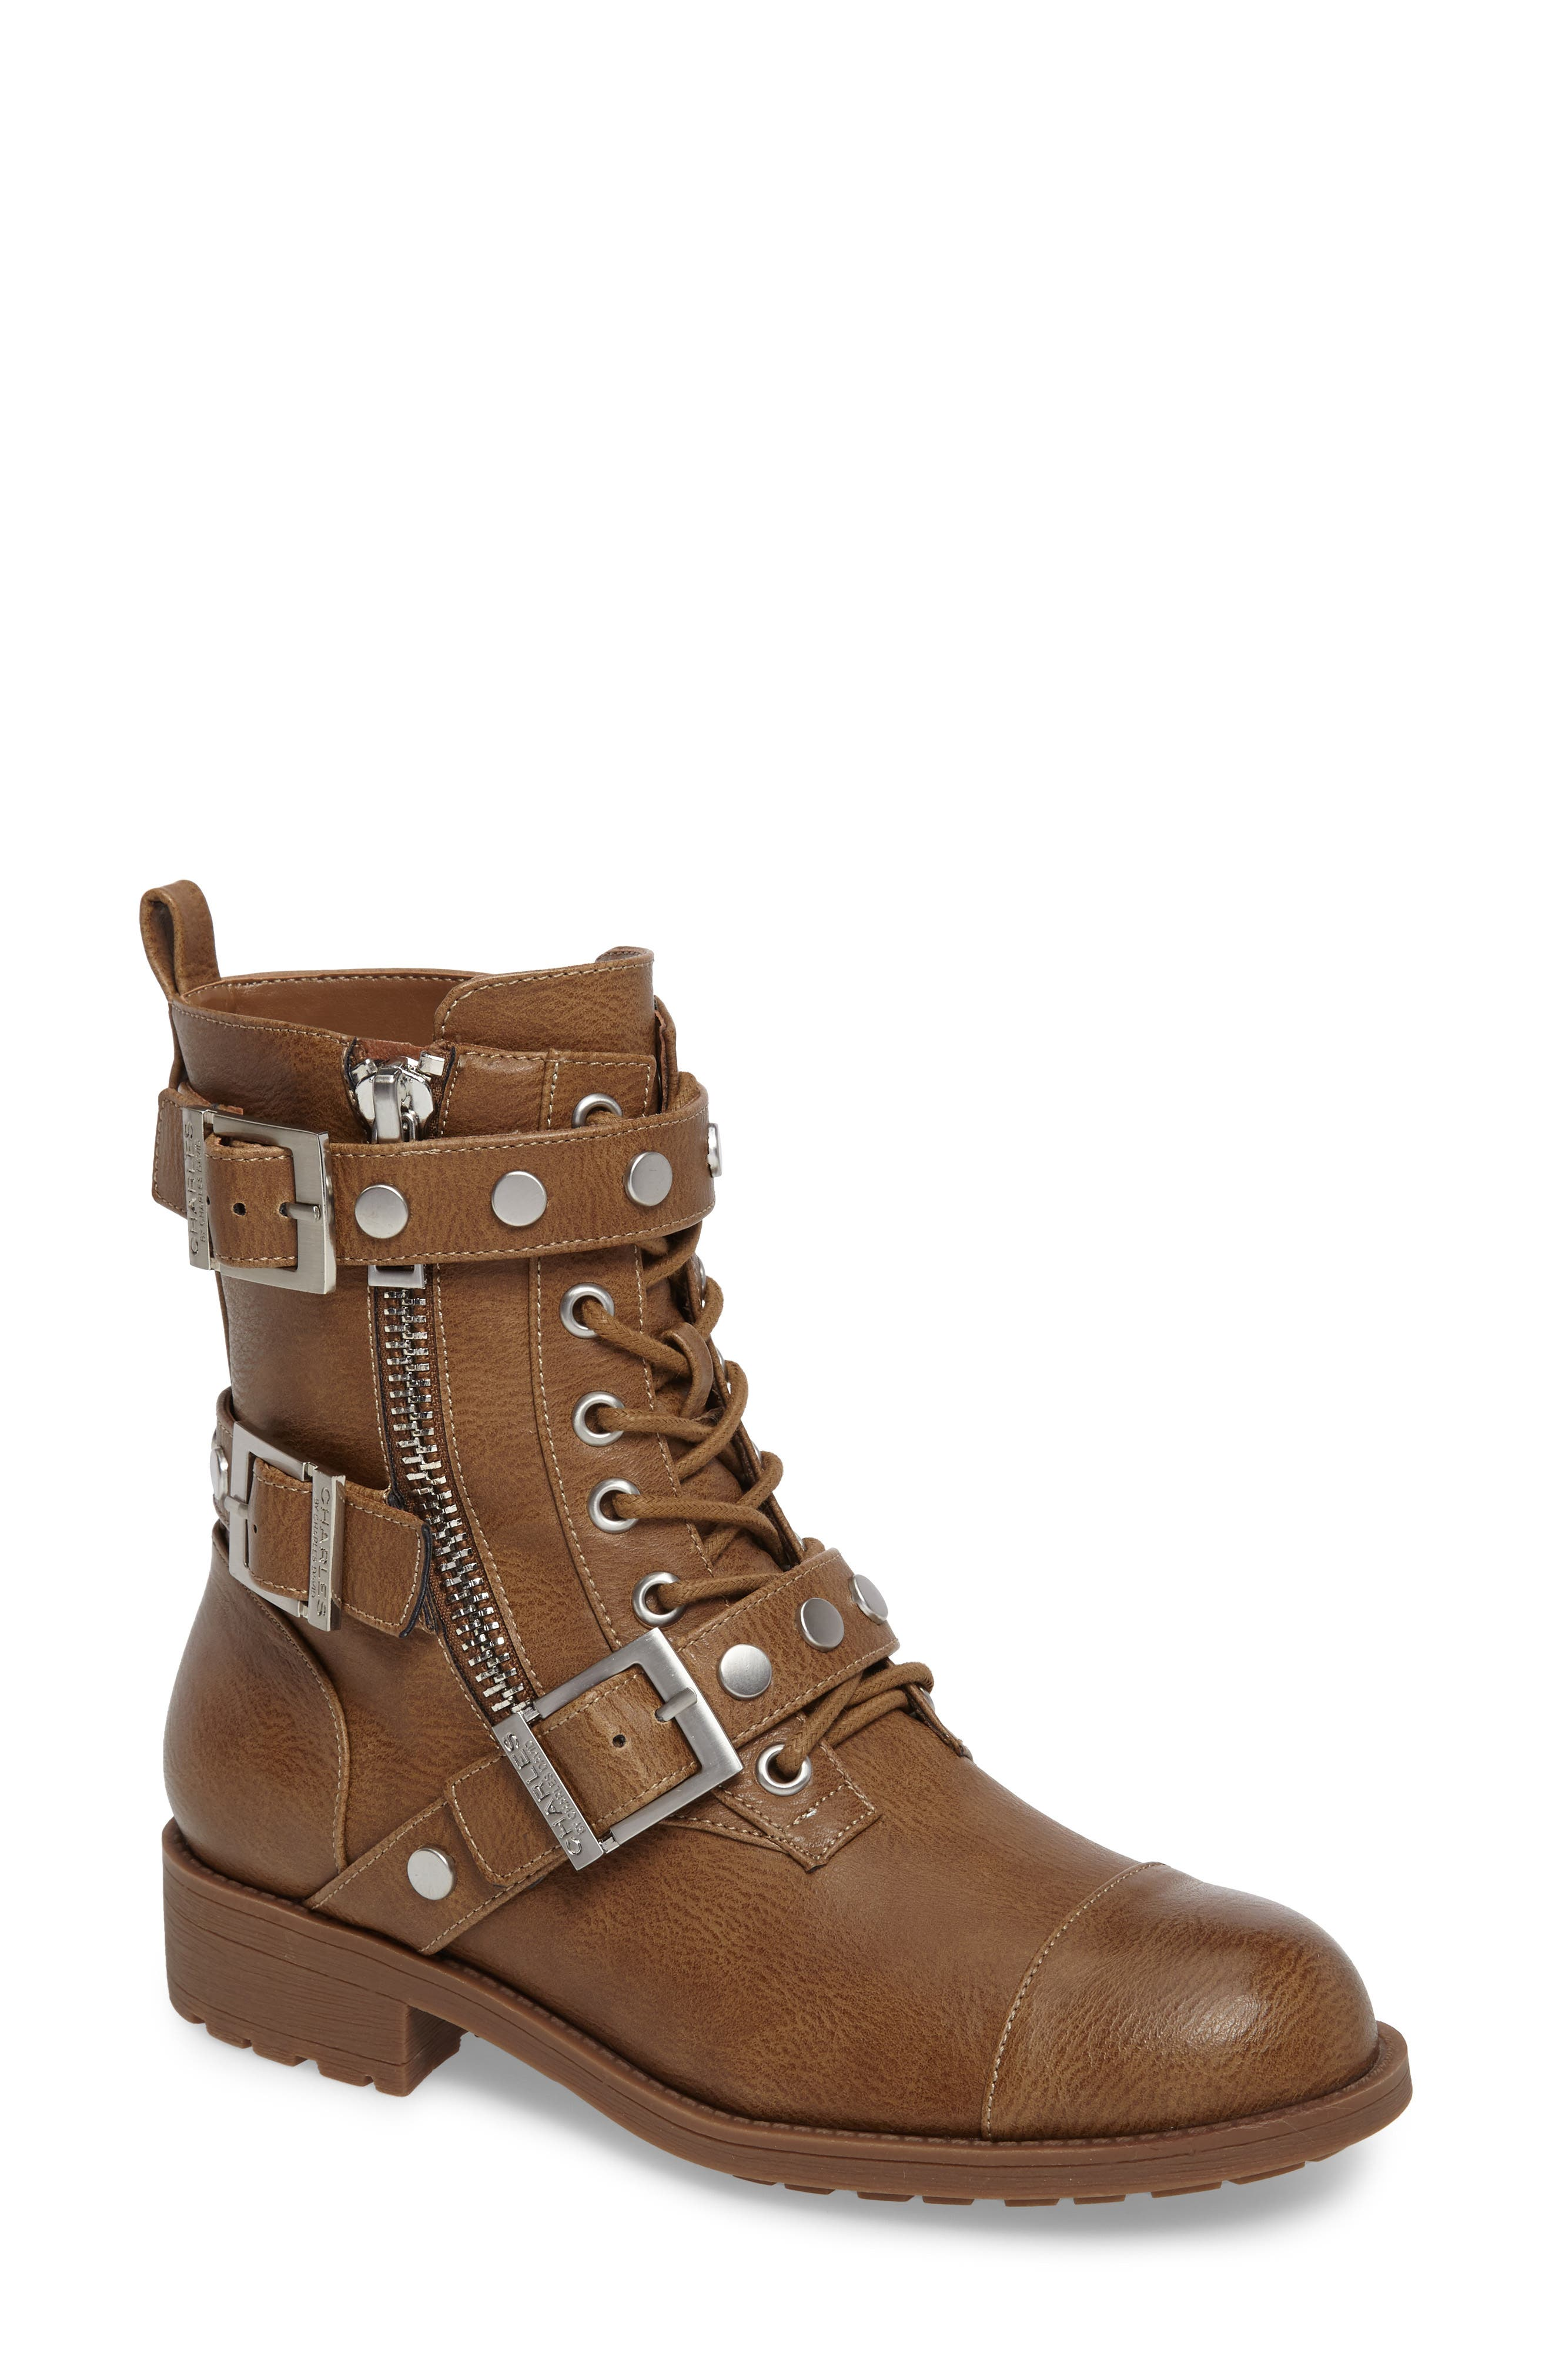 Alternate Image 1 Selected - Charles by Charles David Colt Boot (Women)